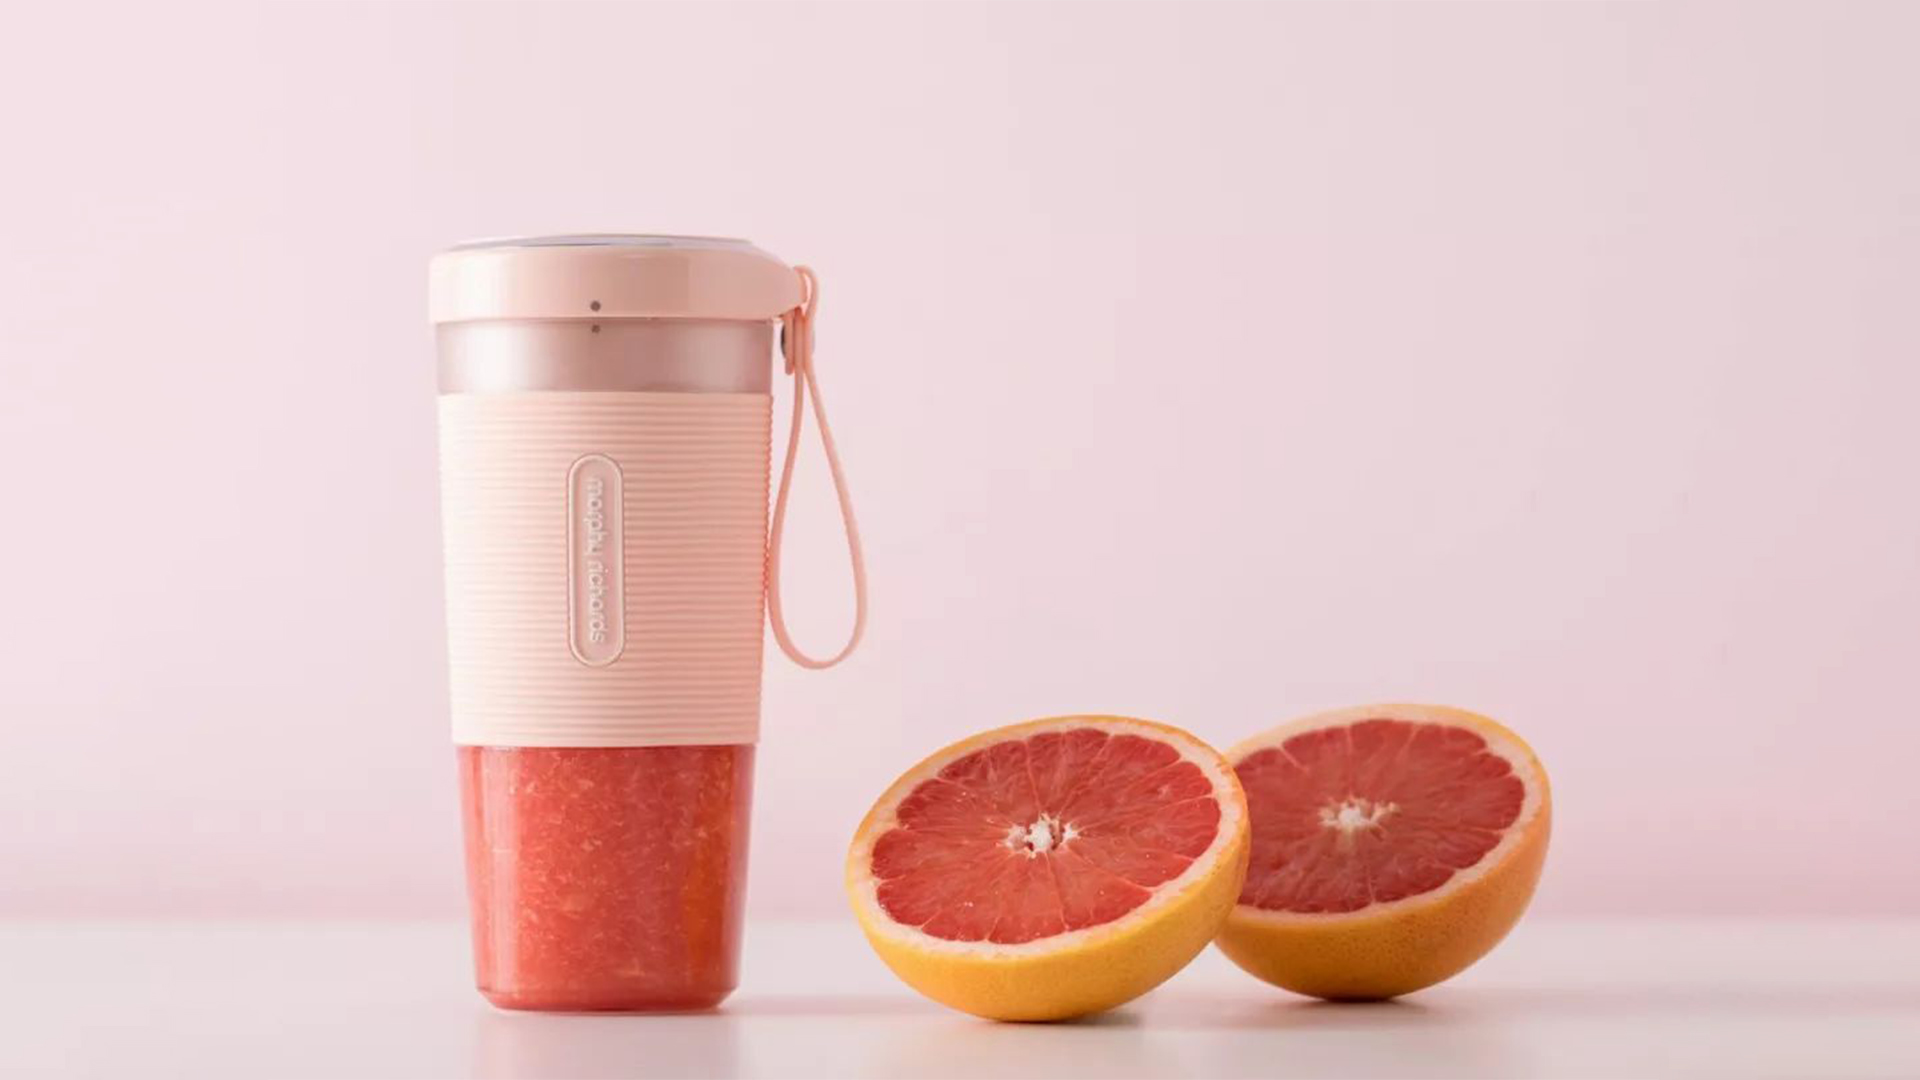 Portable Juicer 7 - Sneapy